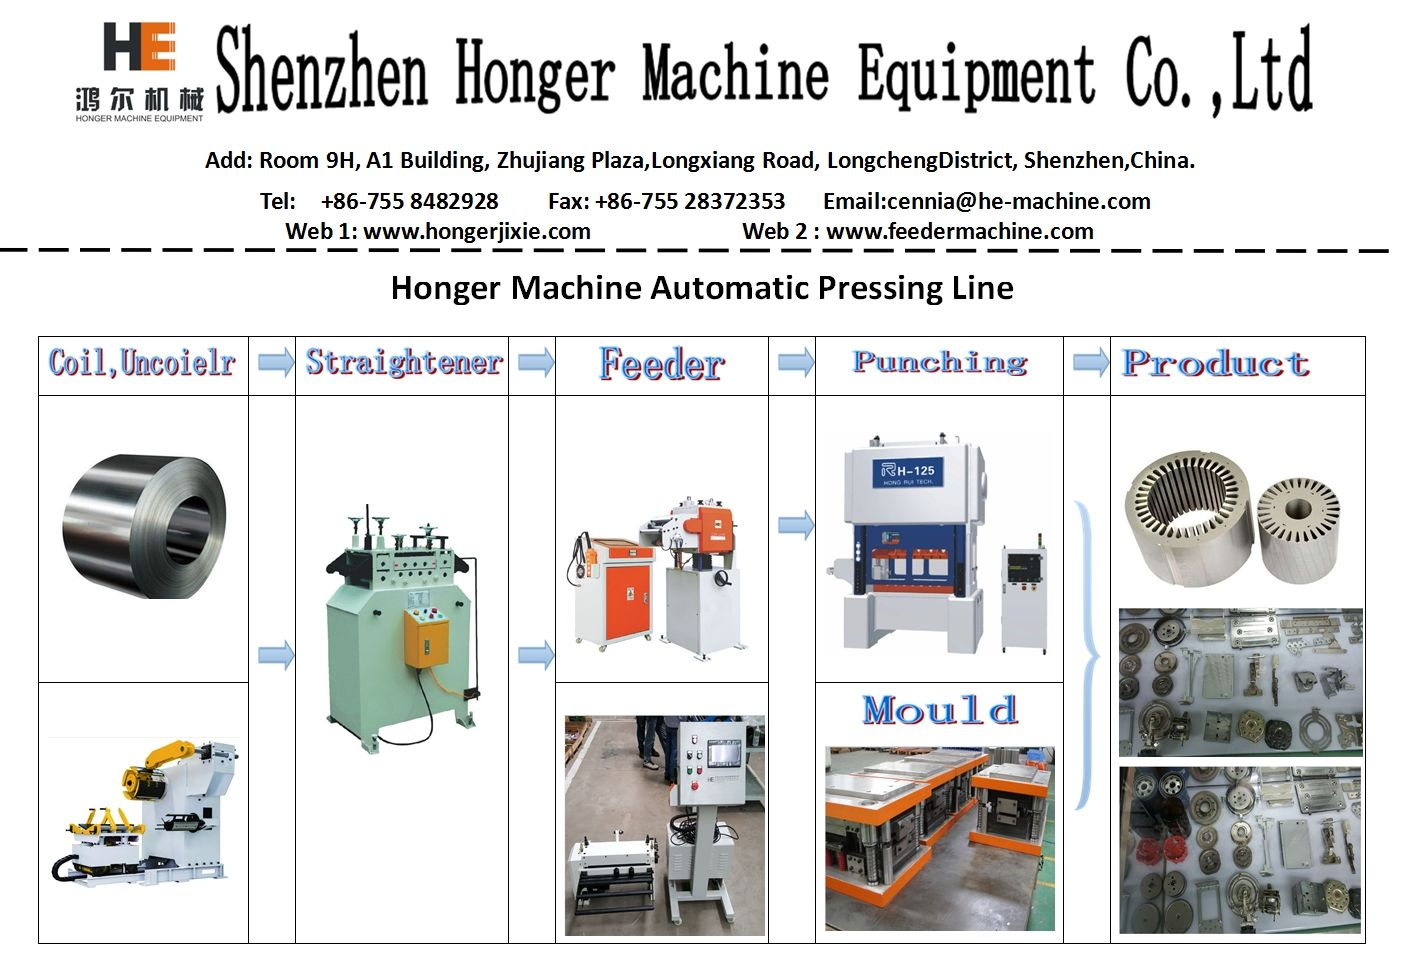 Motorised Decoiler - Standard Uncoiler Machine - HONGER #industrialdesign #industrialmachinery #sheetmetalworkers #precisionmetalworking #sheetmetalstamping #mechanicalengineer #engineeringindustries #electricandelectronics